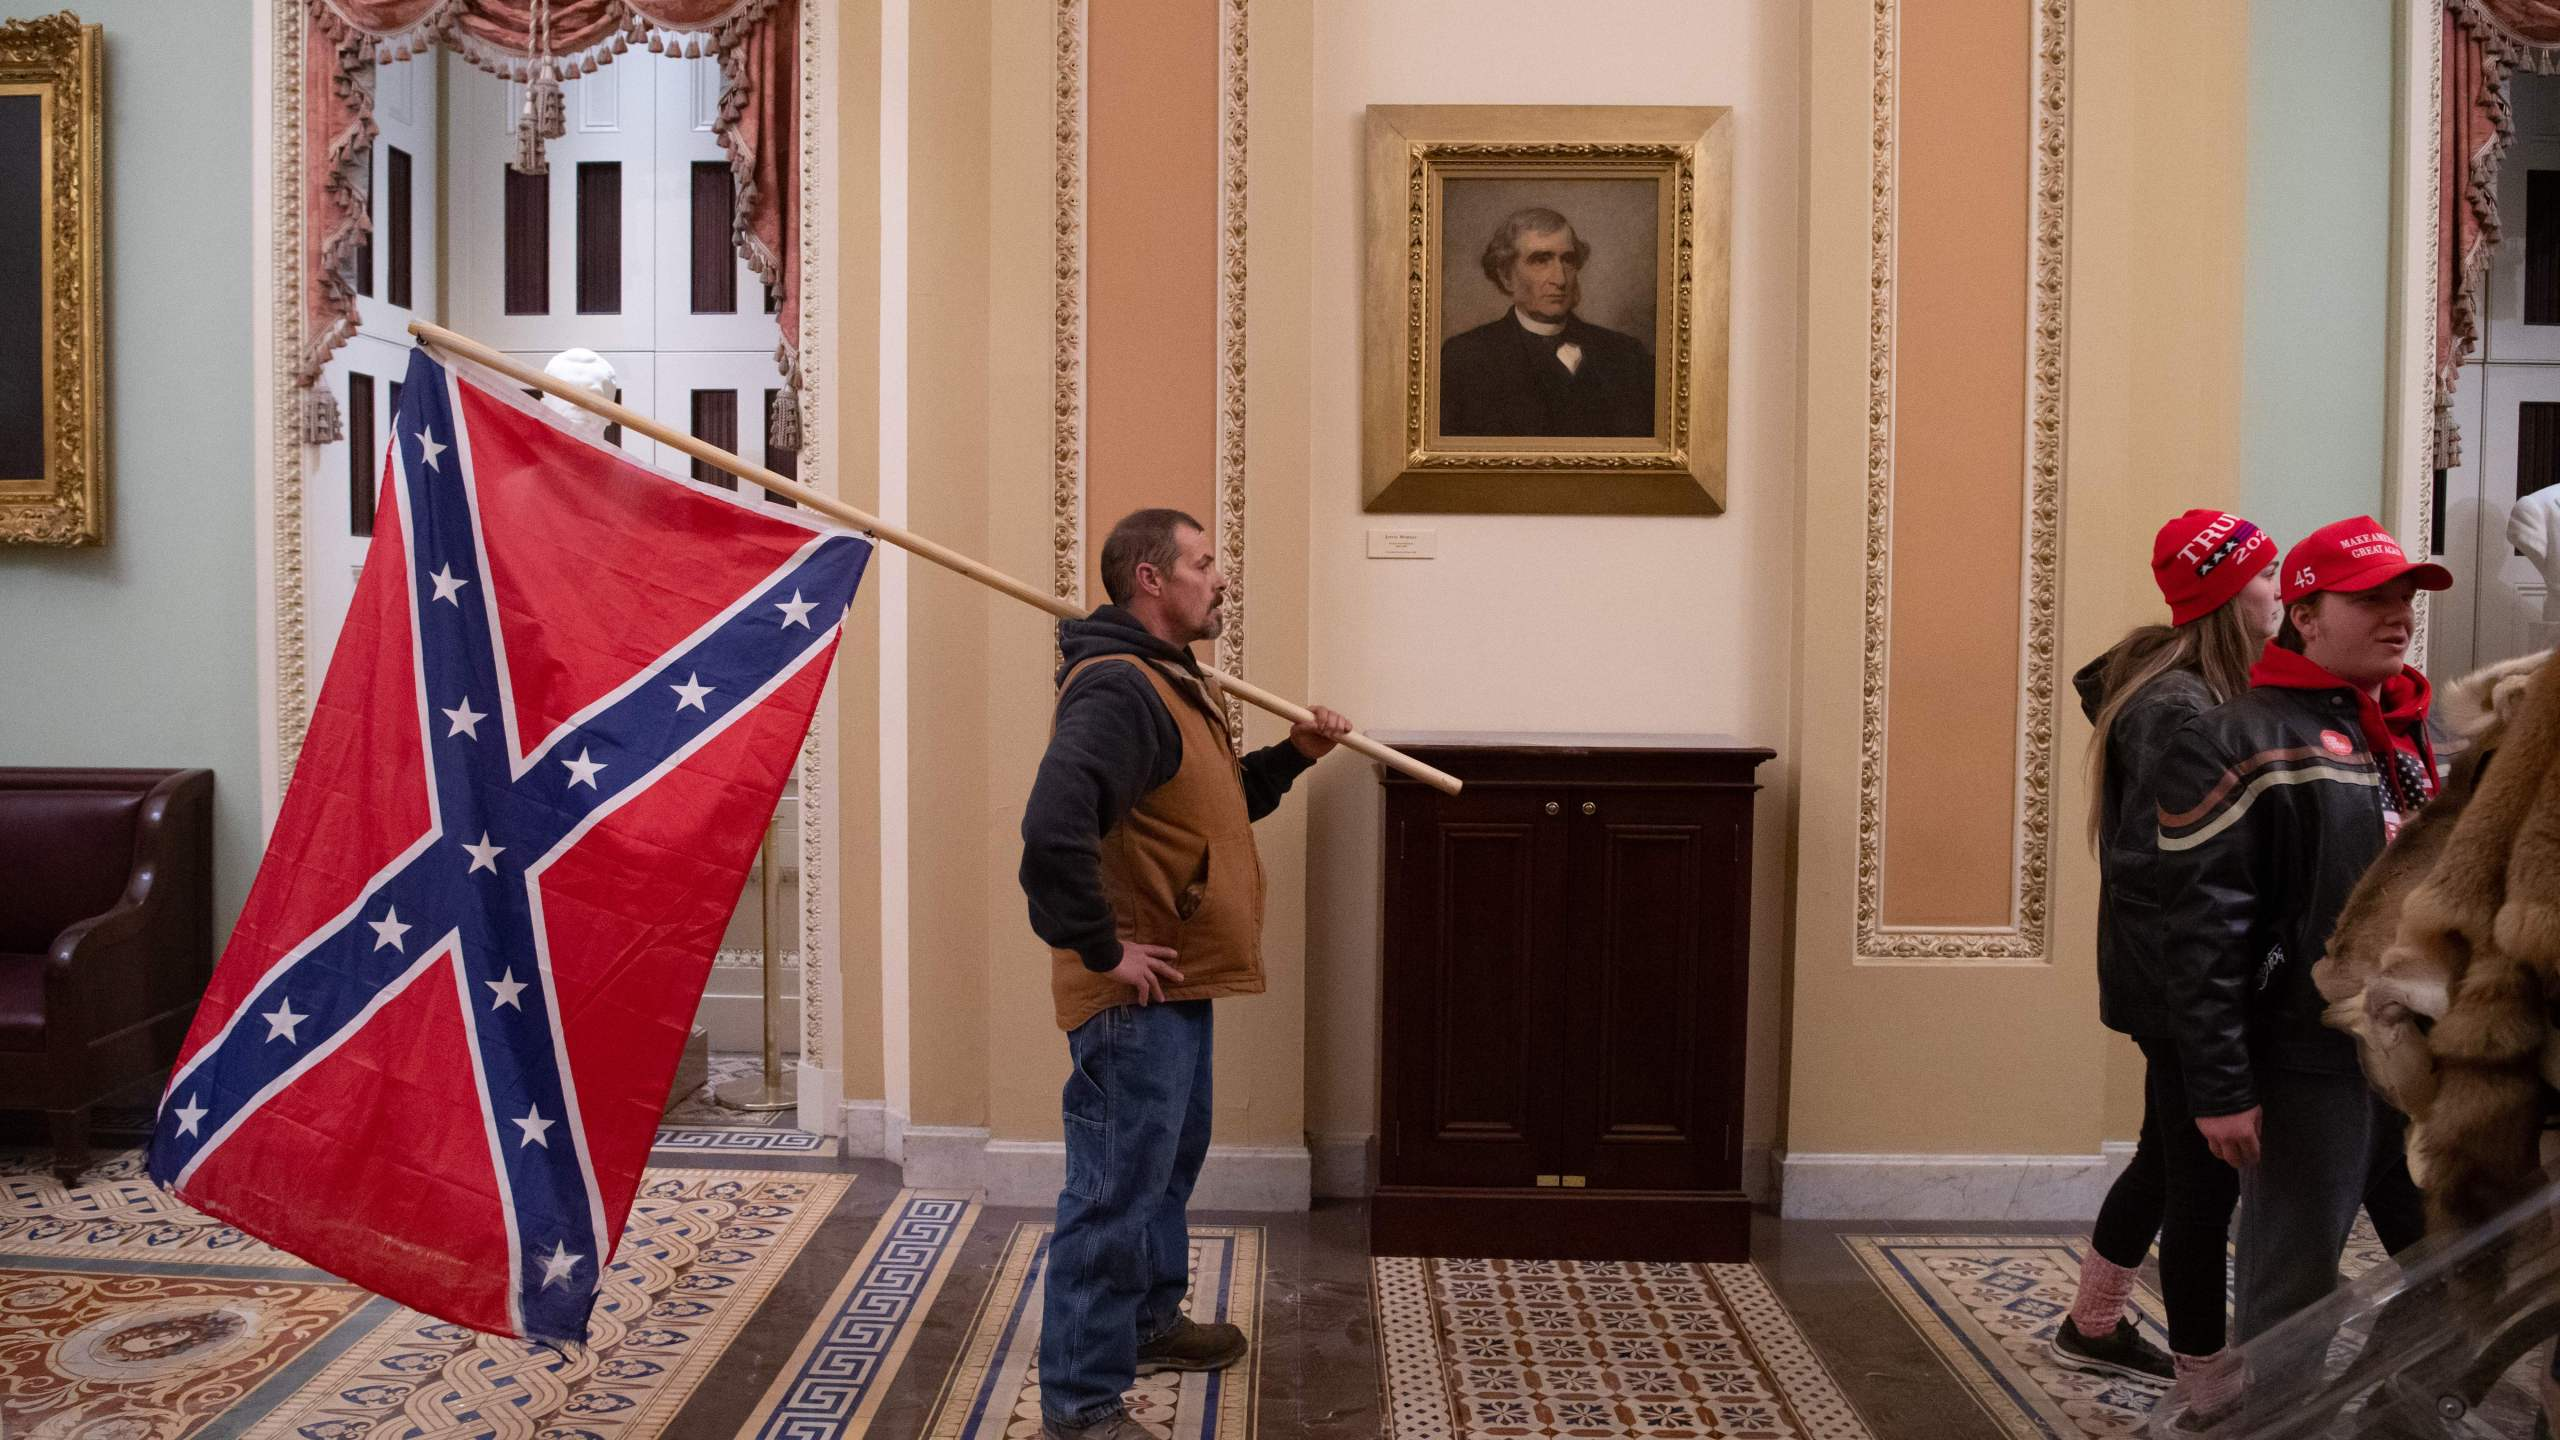 A supporter of Donald Trump holds a Confederate flag outside the Senate Chamber during a protest after breaching the US Capitol in Washington, D.C., Jan. 6, 2021. (SAUL LOEB/AFP via Getty Images)